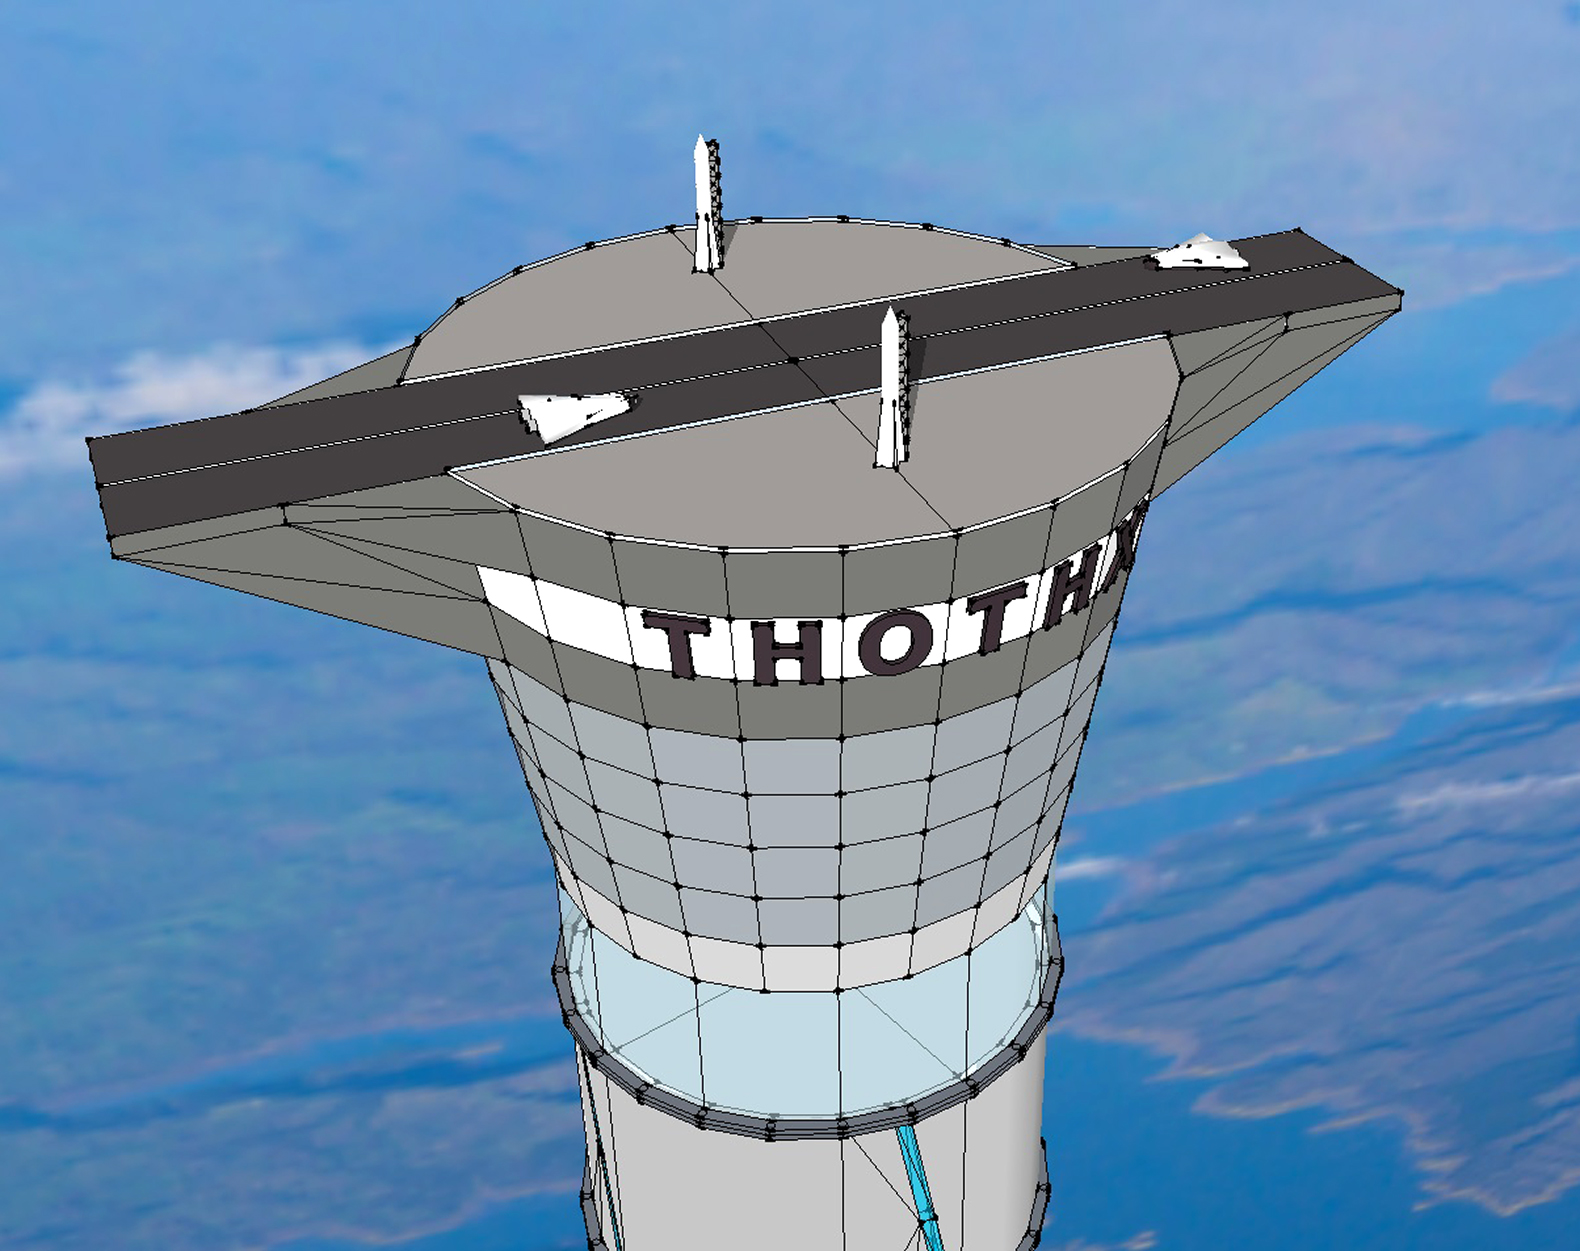 Thoth Technology patents 12-mile-high inflatable space elevator